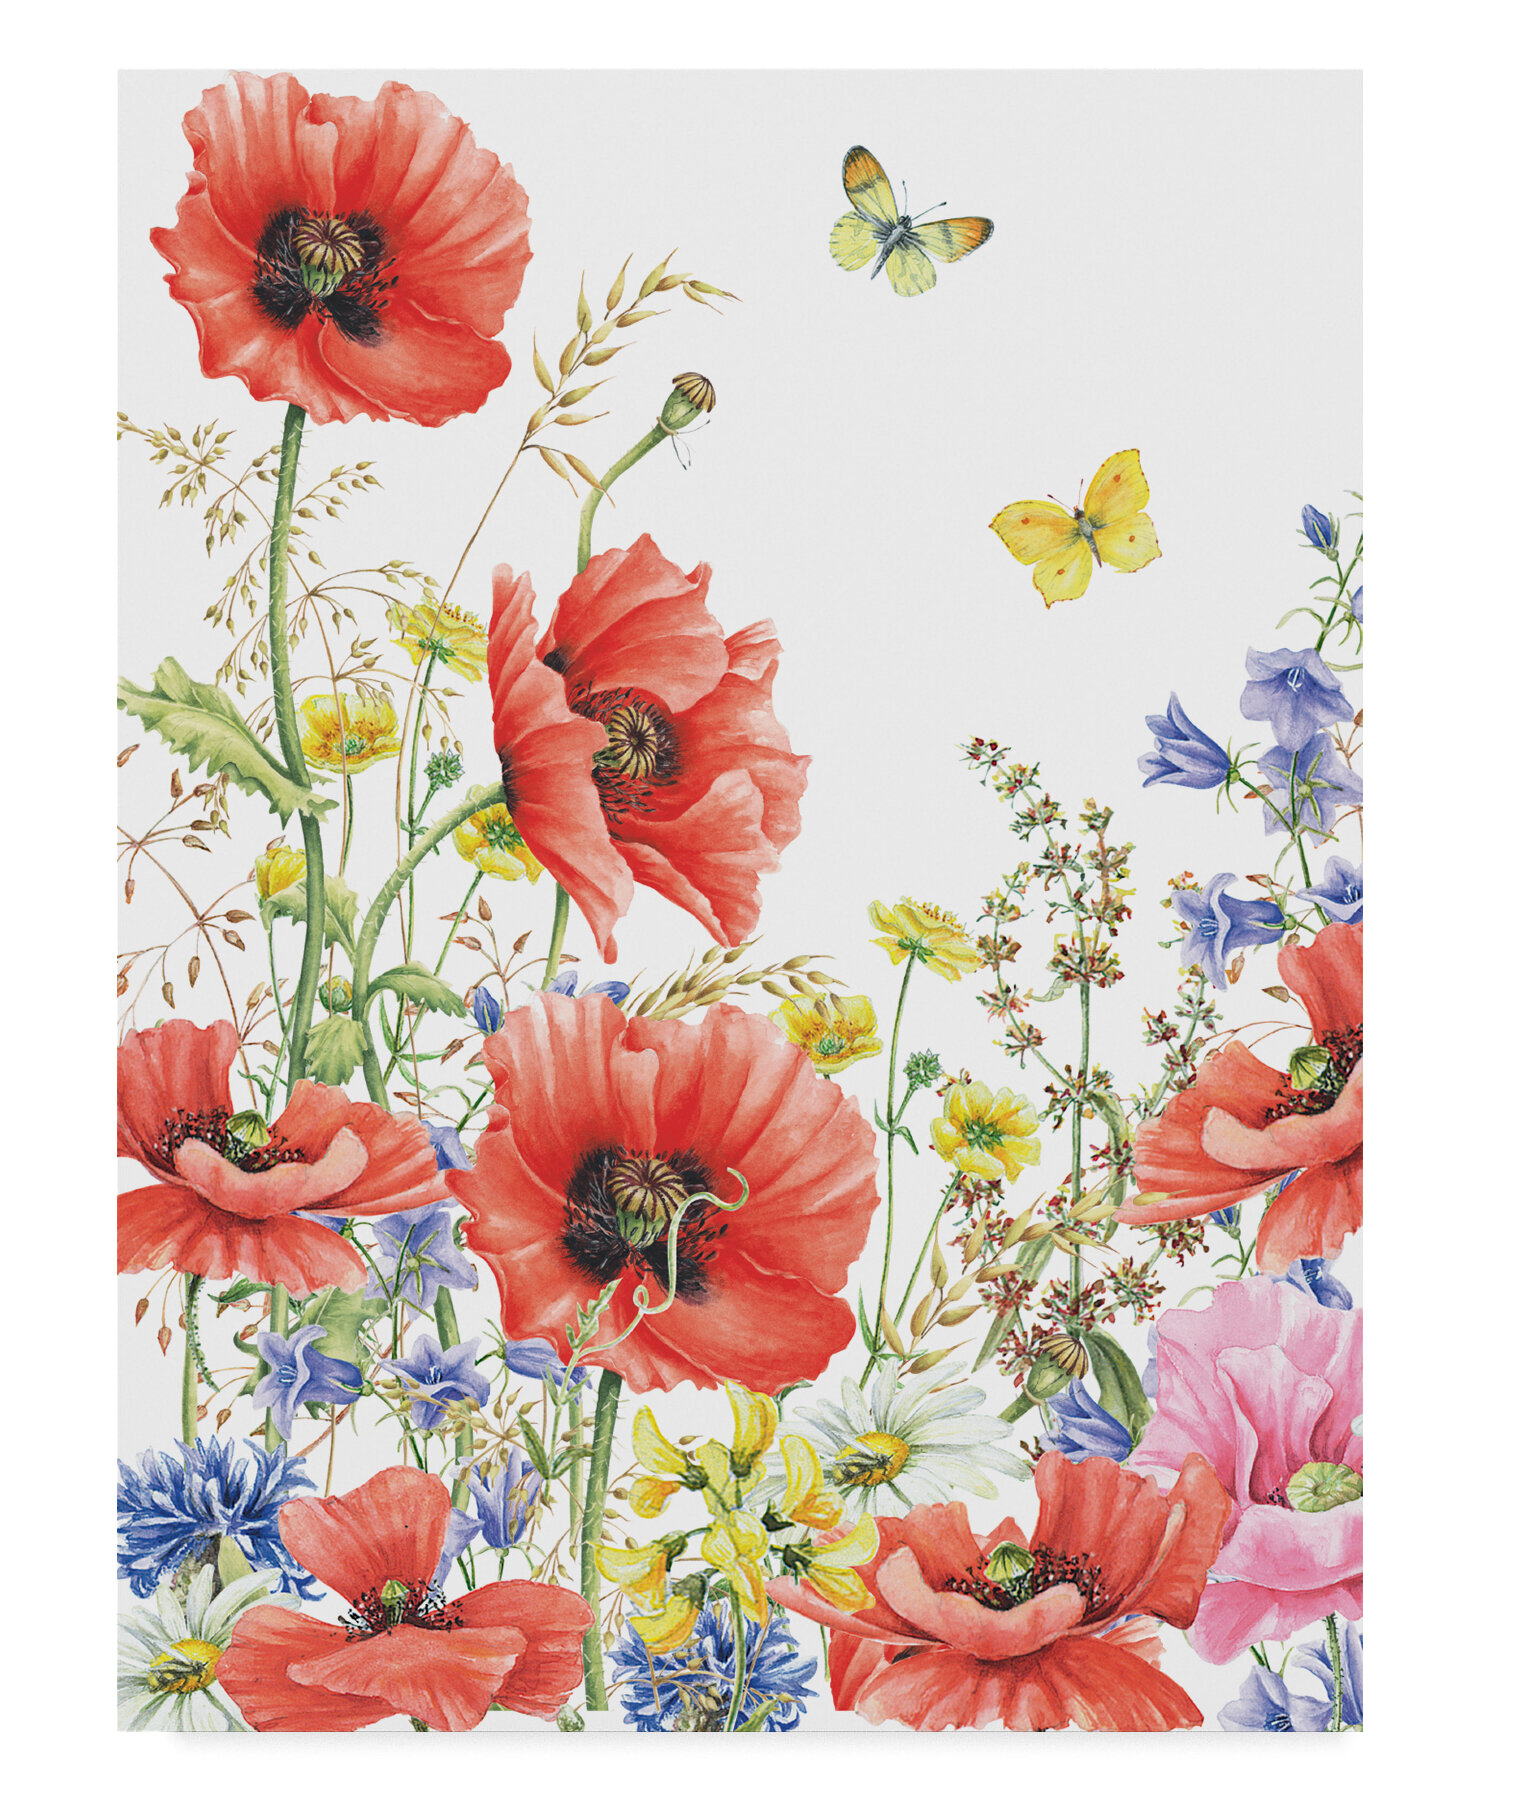 Red Poppy Field 3D Window View Floral Poster Art Wall Prints